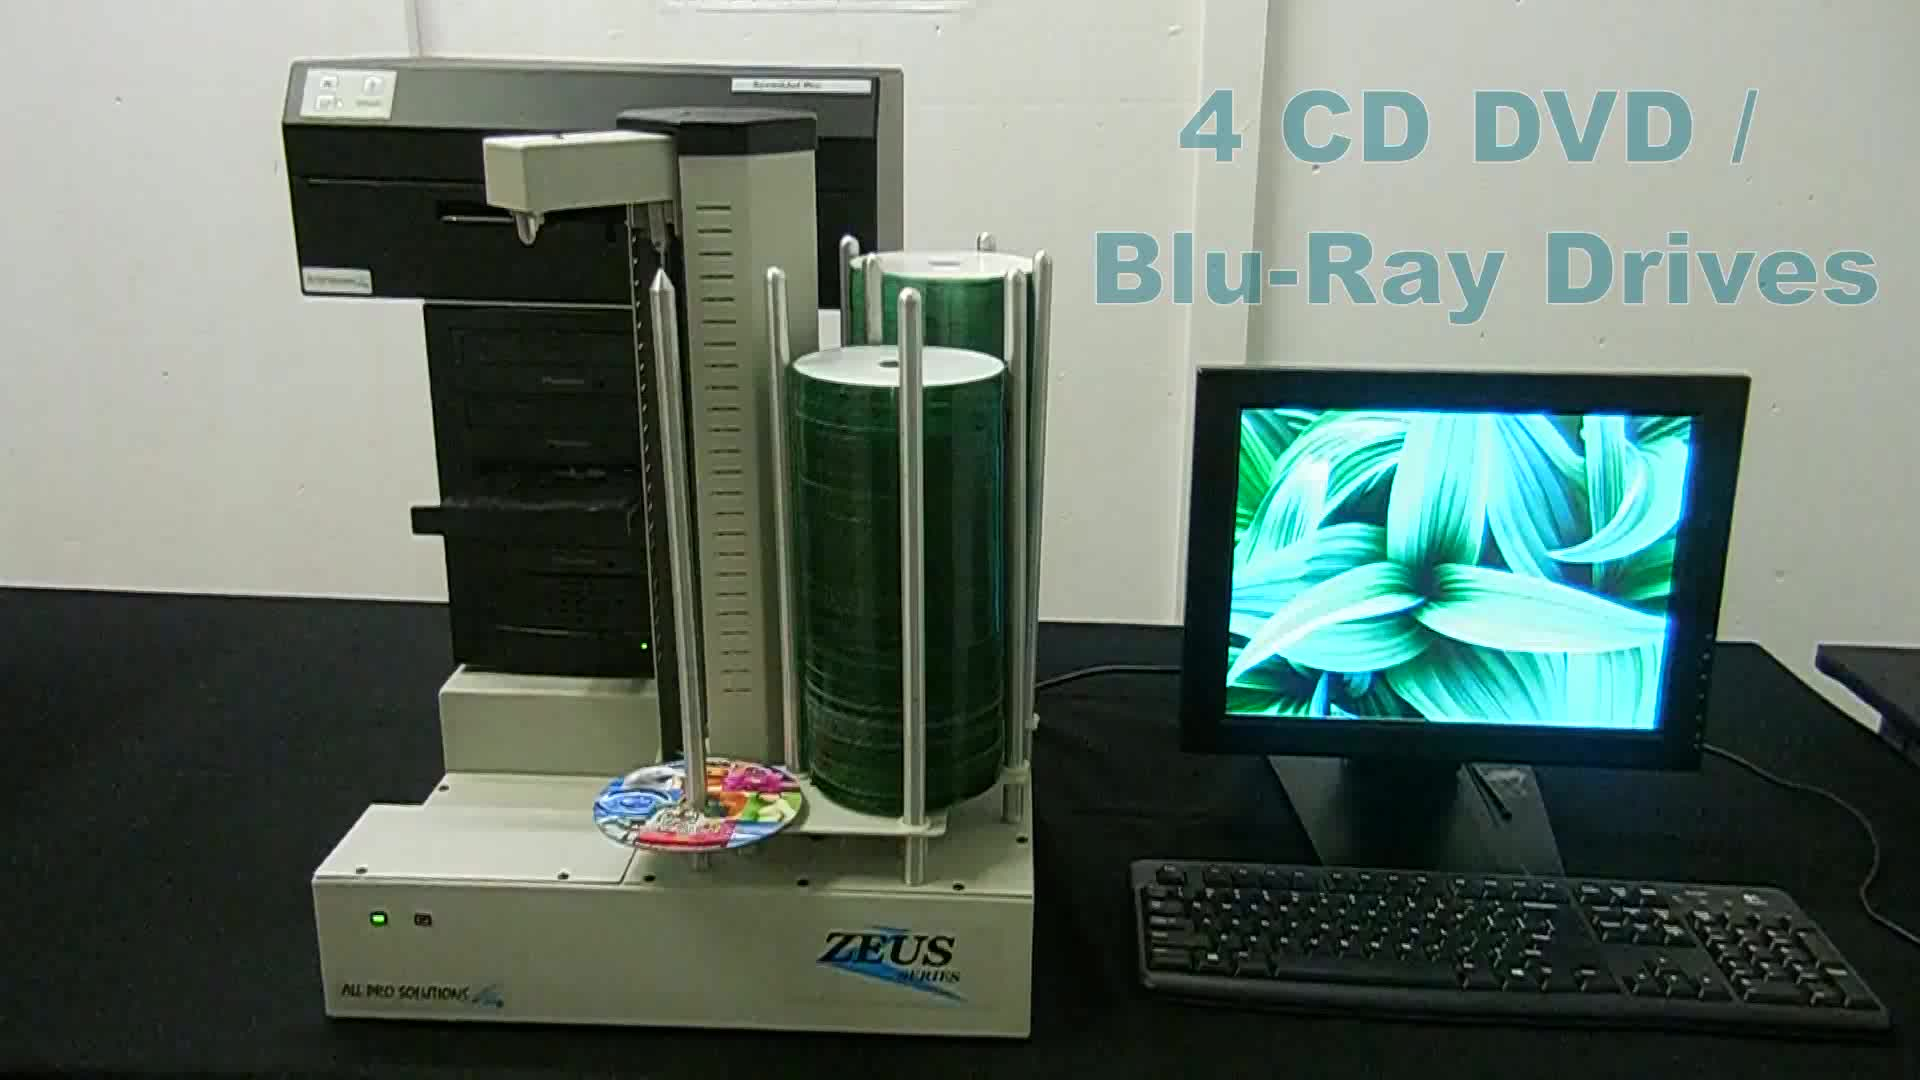 Zeus 4H BD Blu-Ray Publisher w/ Built-In PC, Inkjet Printer & 420 Disc Capacity